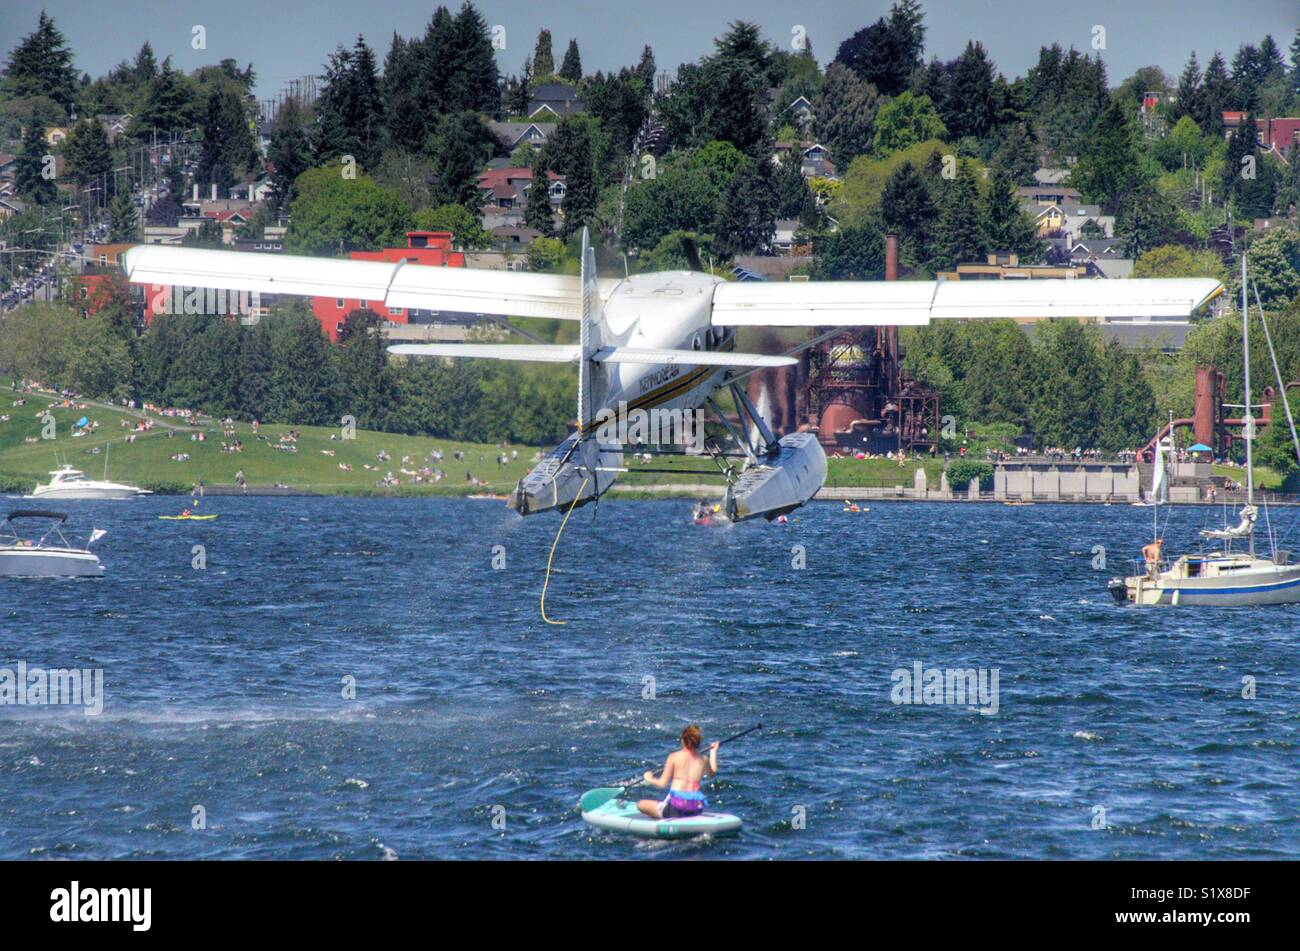 Seaplane taking off on Lake Union over the top of a kayaker - Stock Image